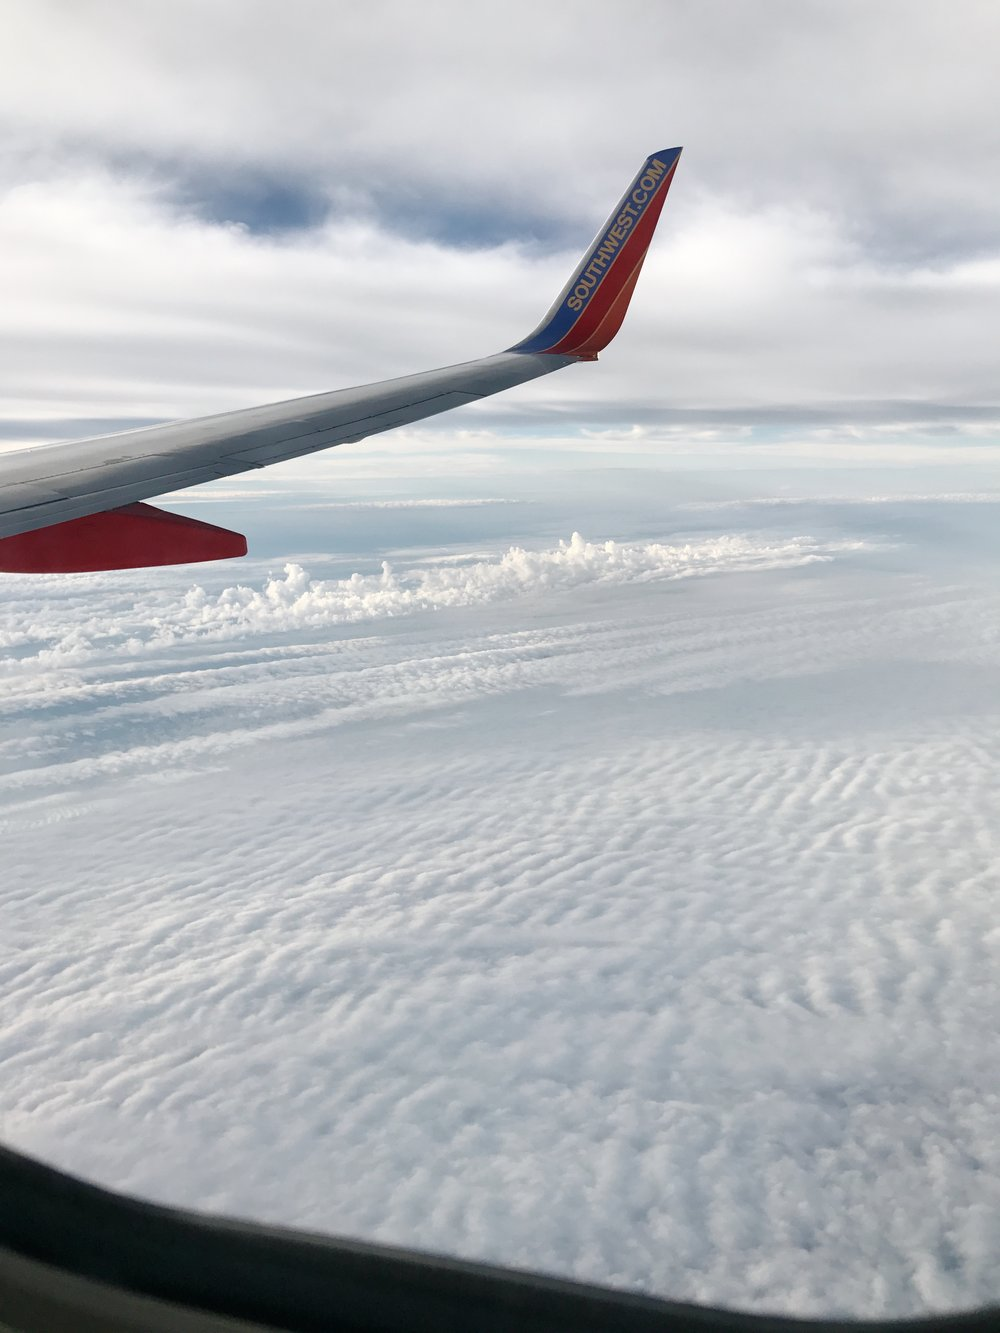 In the clouds